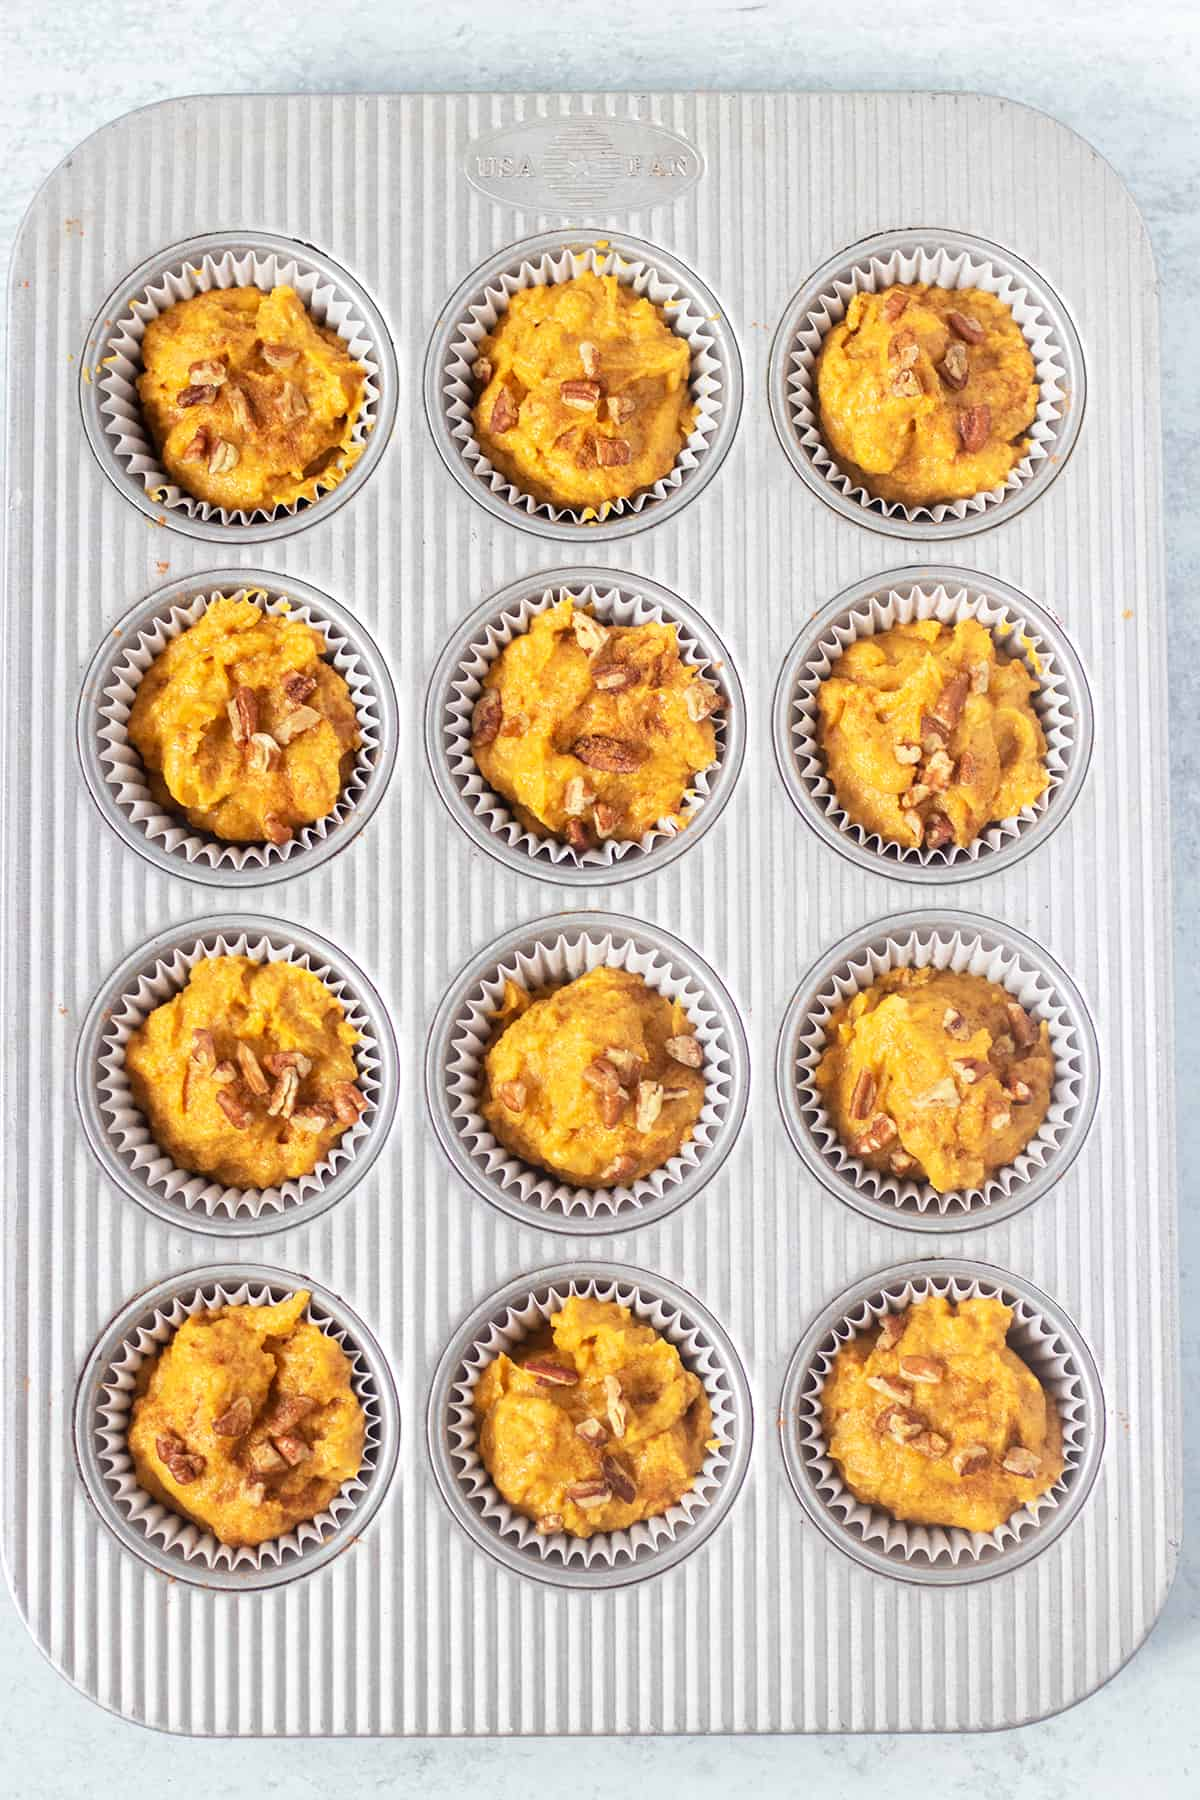 pumpkin muffins in pan lined with baking cups prior to being baked